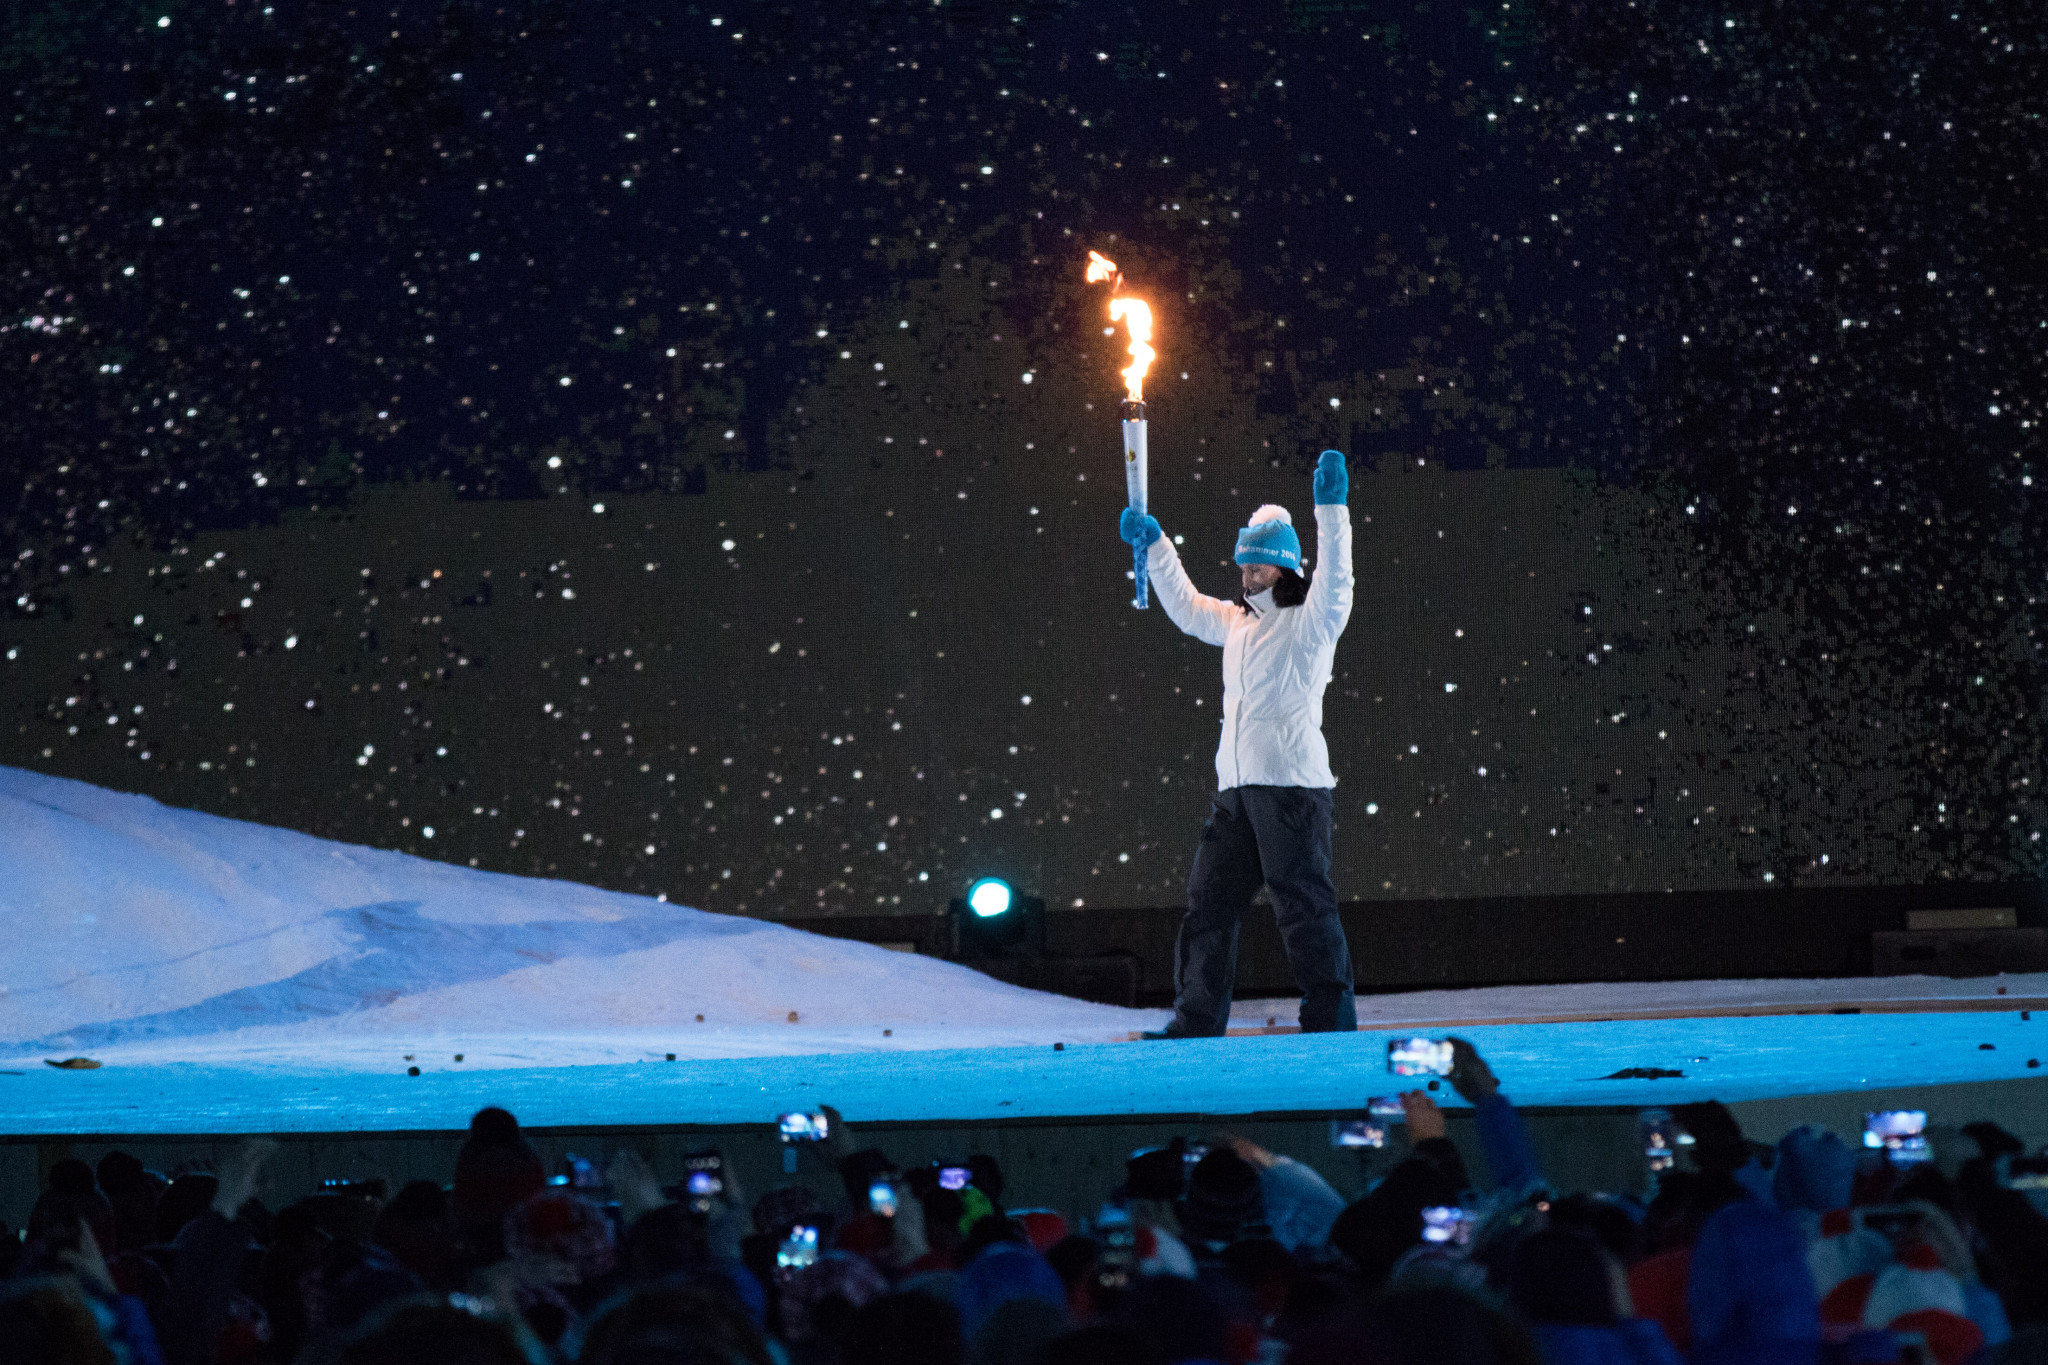 Lillehammer 2016 saw a mixture of hope and wonder at its Opening Ceremony ©Getty Images